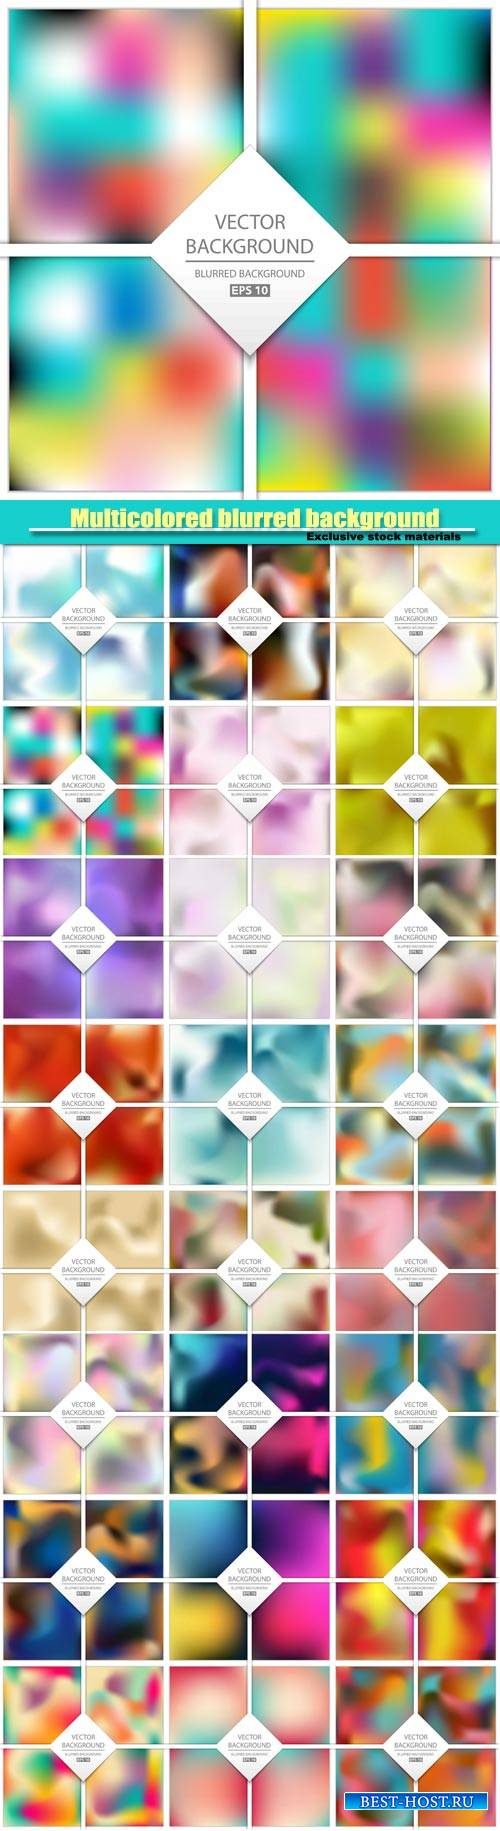 Vector abstract multicolored blurred background set